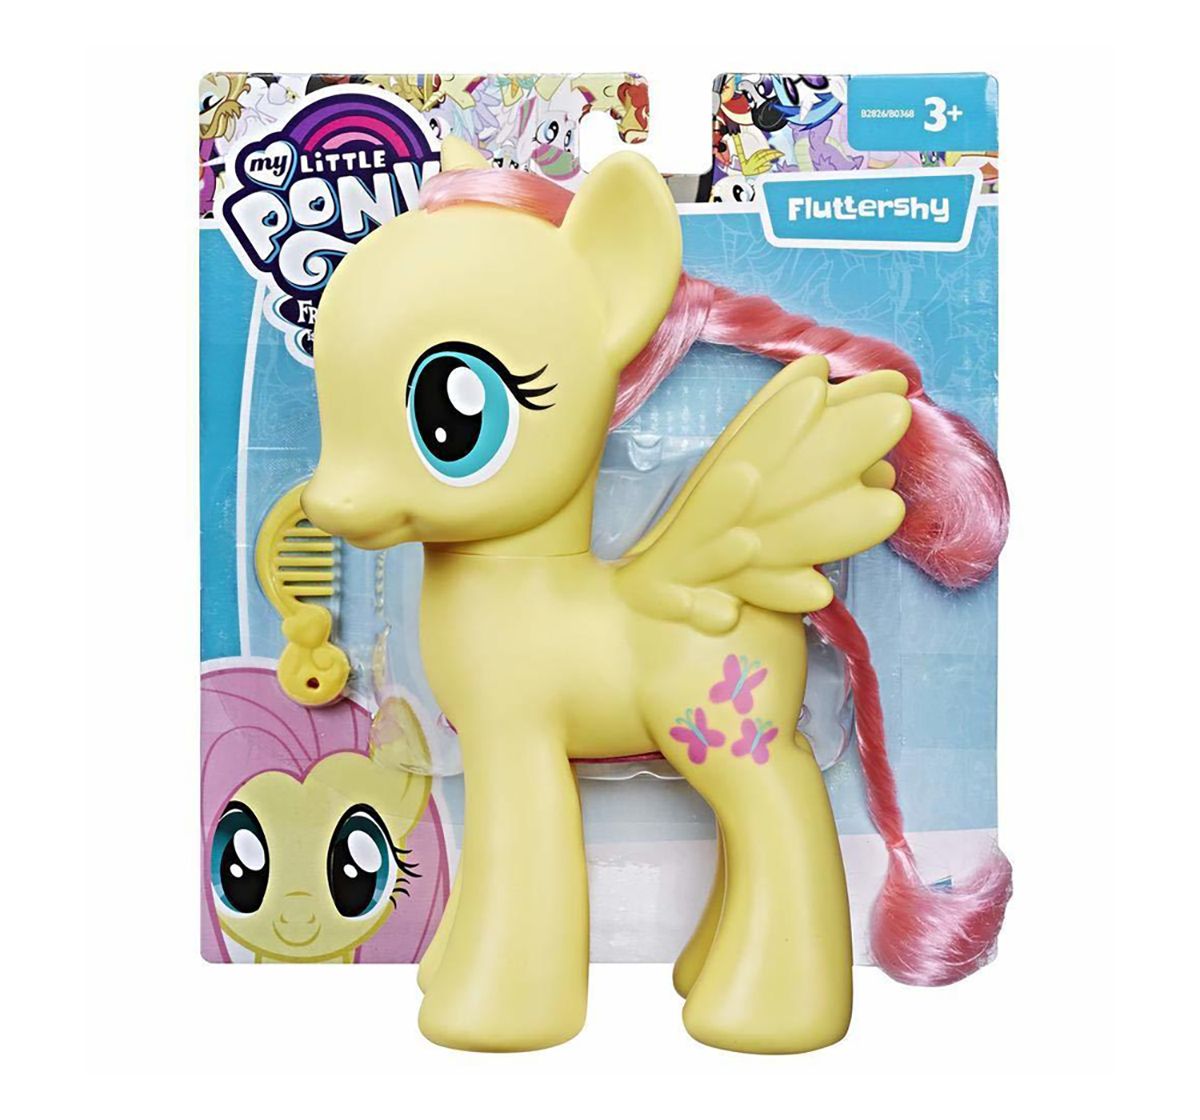 My Little Pony | My Little Pony 8 Inch Figure - Assorted Collectible Dolls for Kids age 3Y+